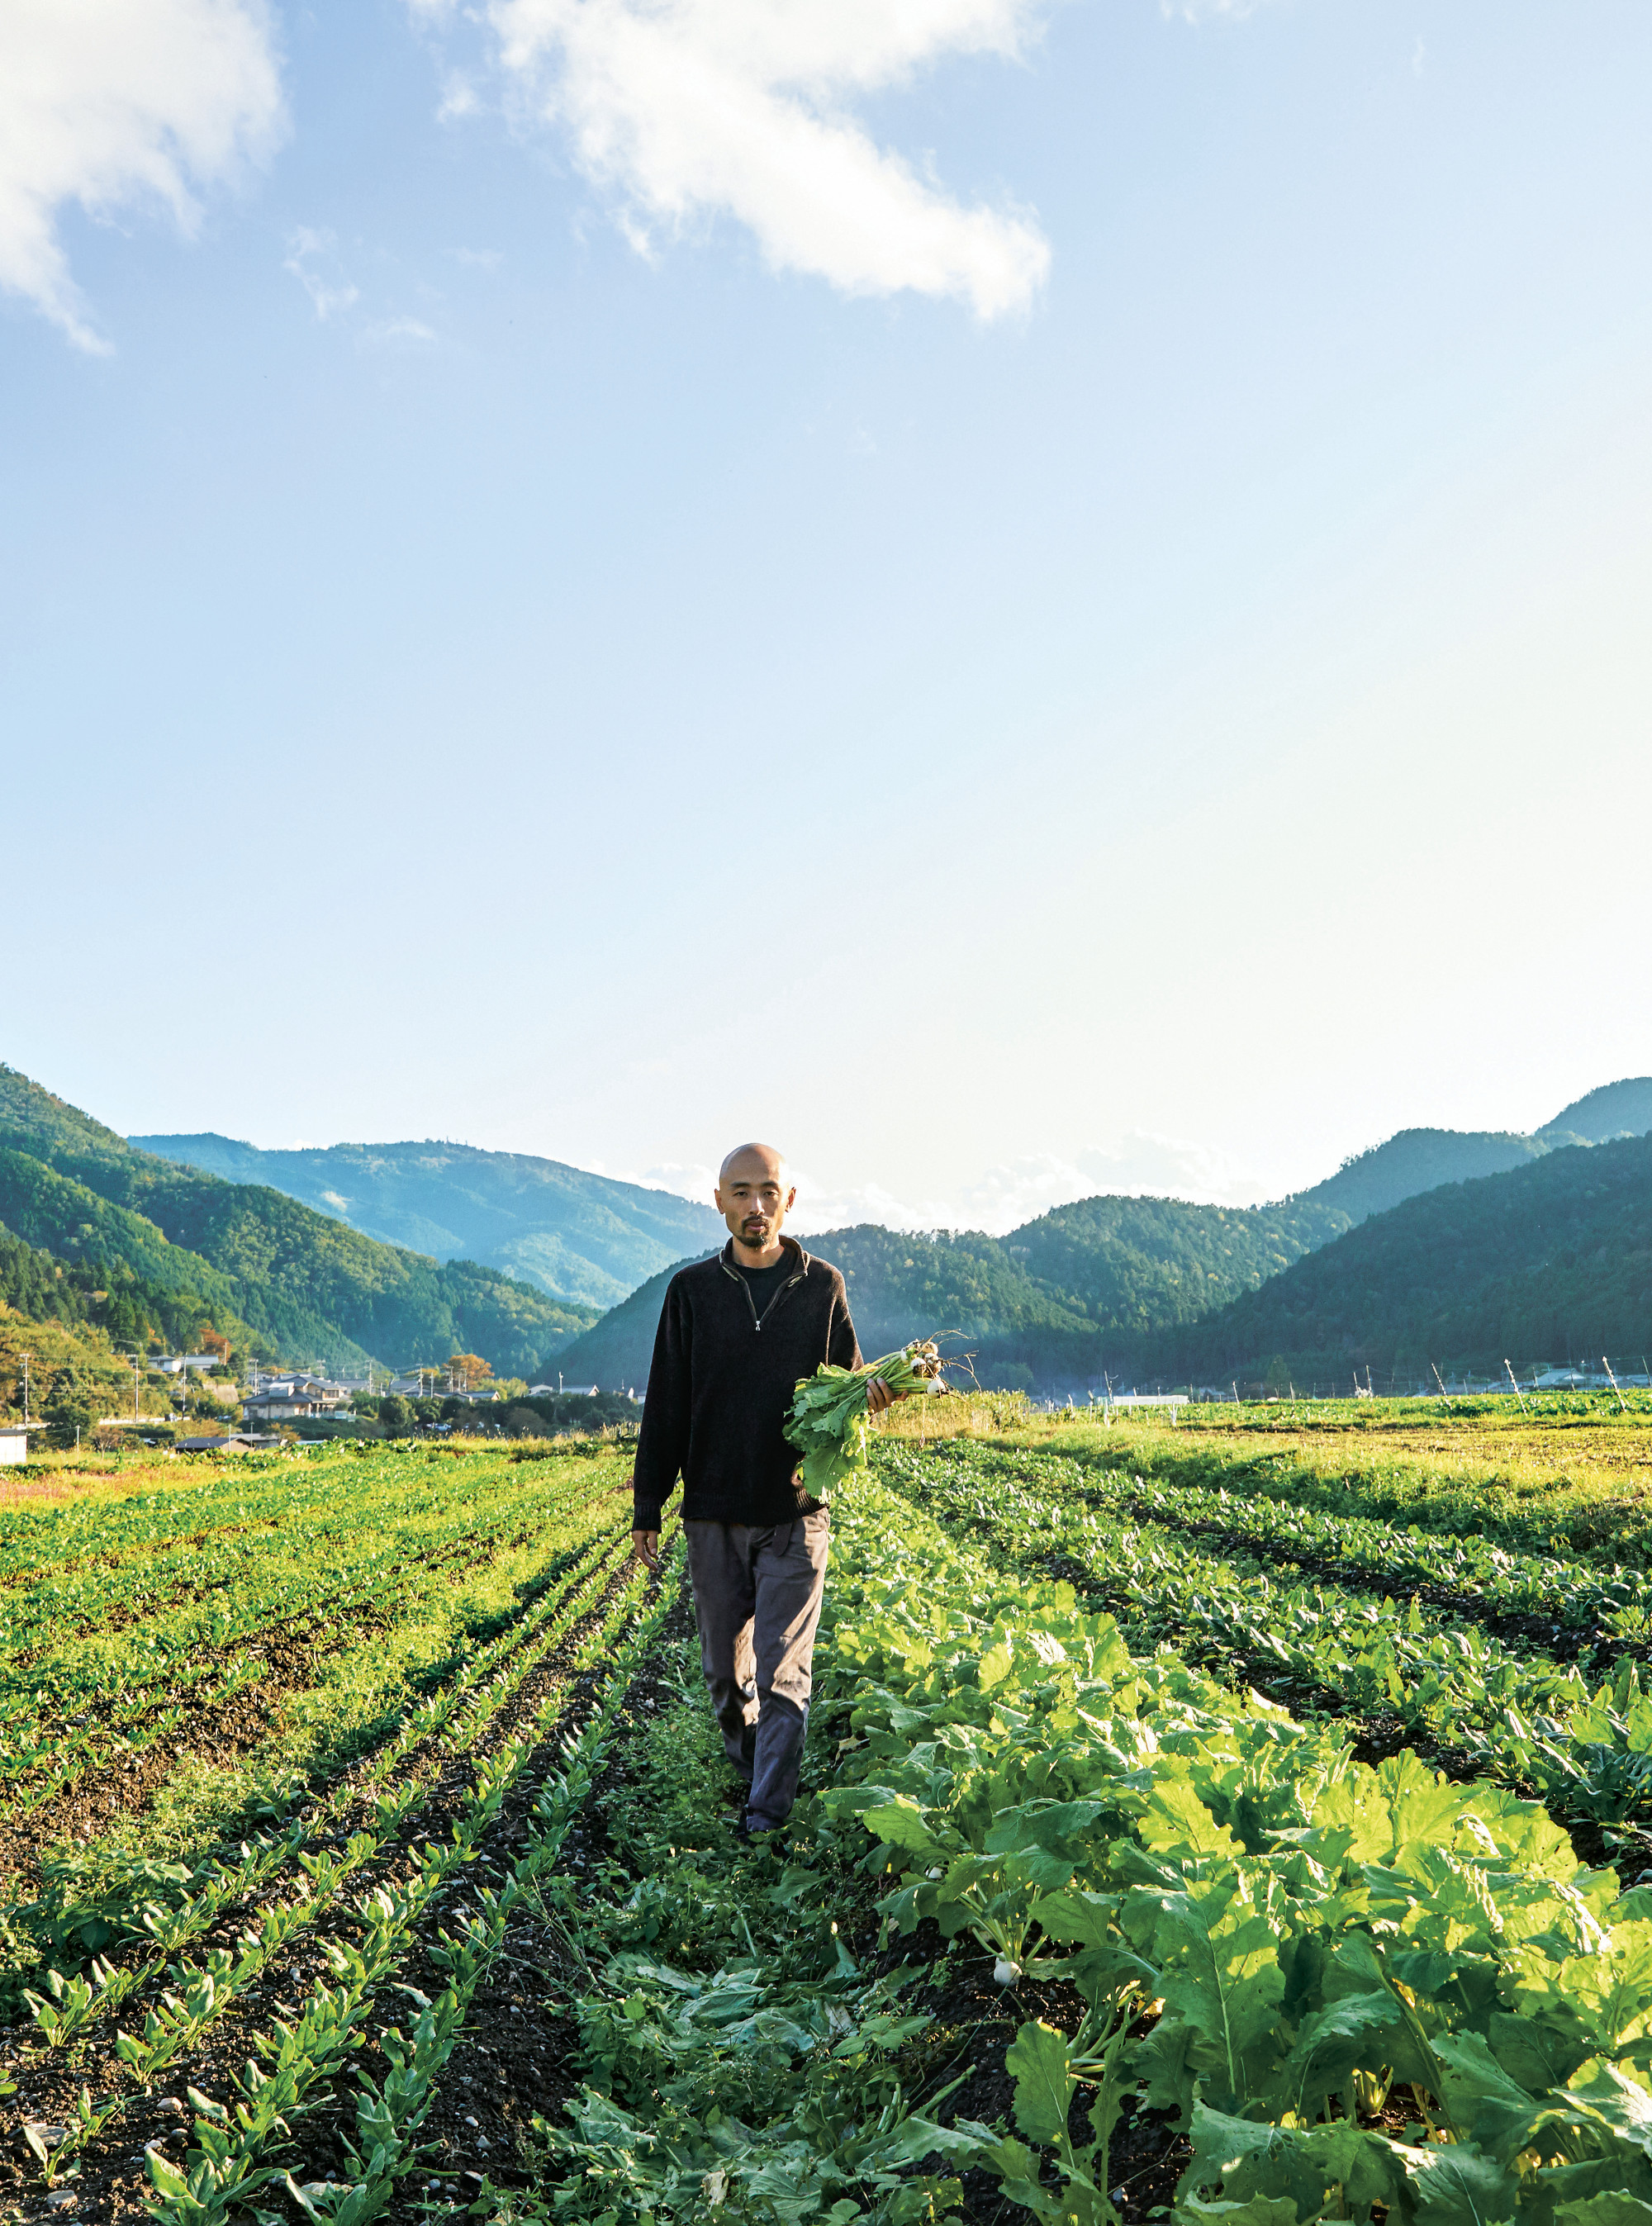 Yoshihiro Imai at a farm in Ohara valley. All photographs by by Yuka Yanazume